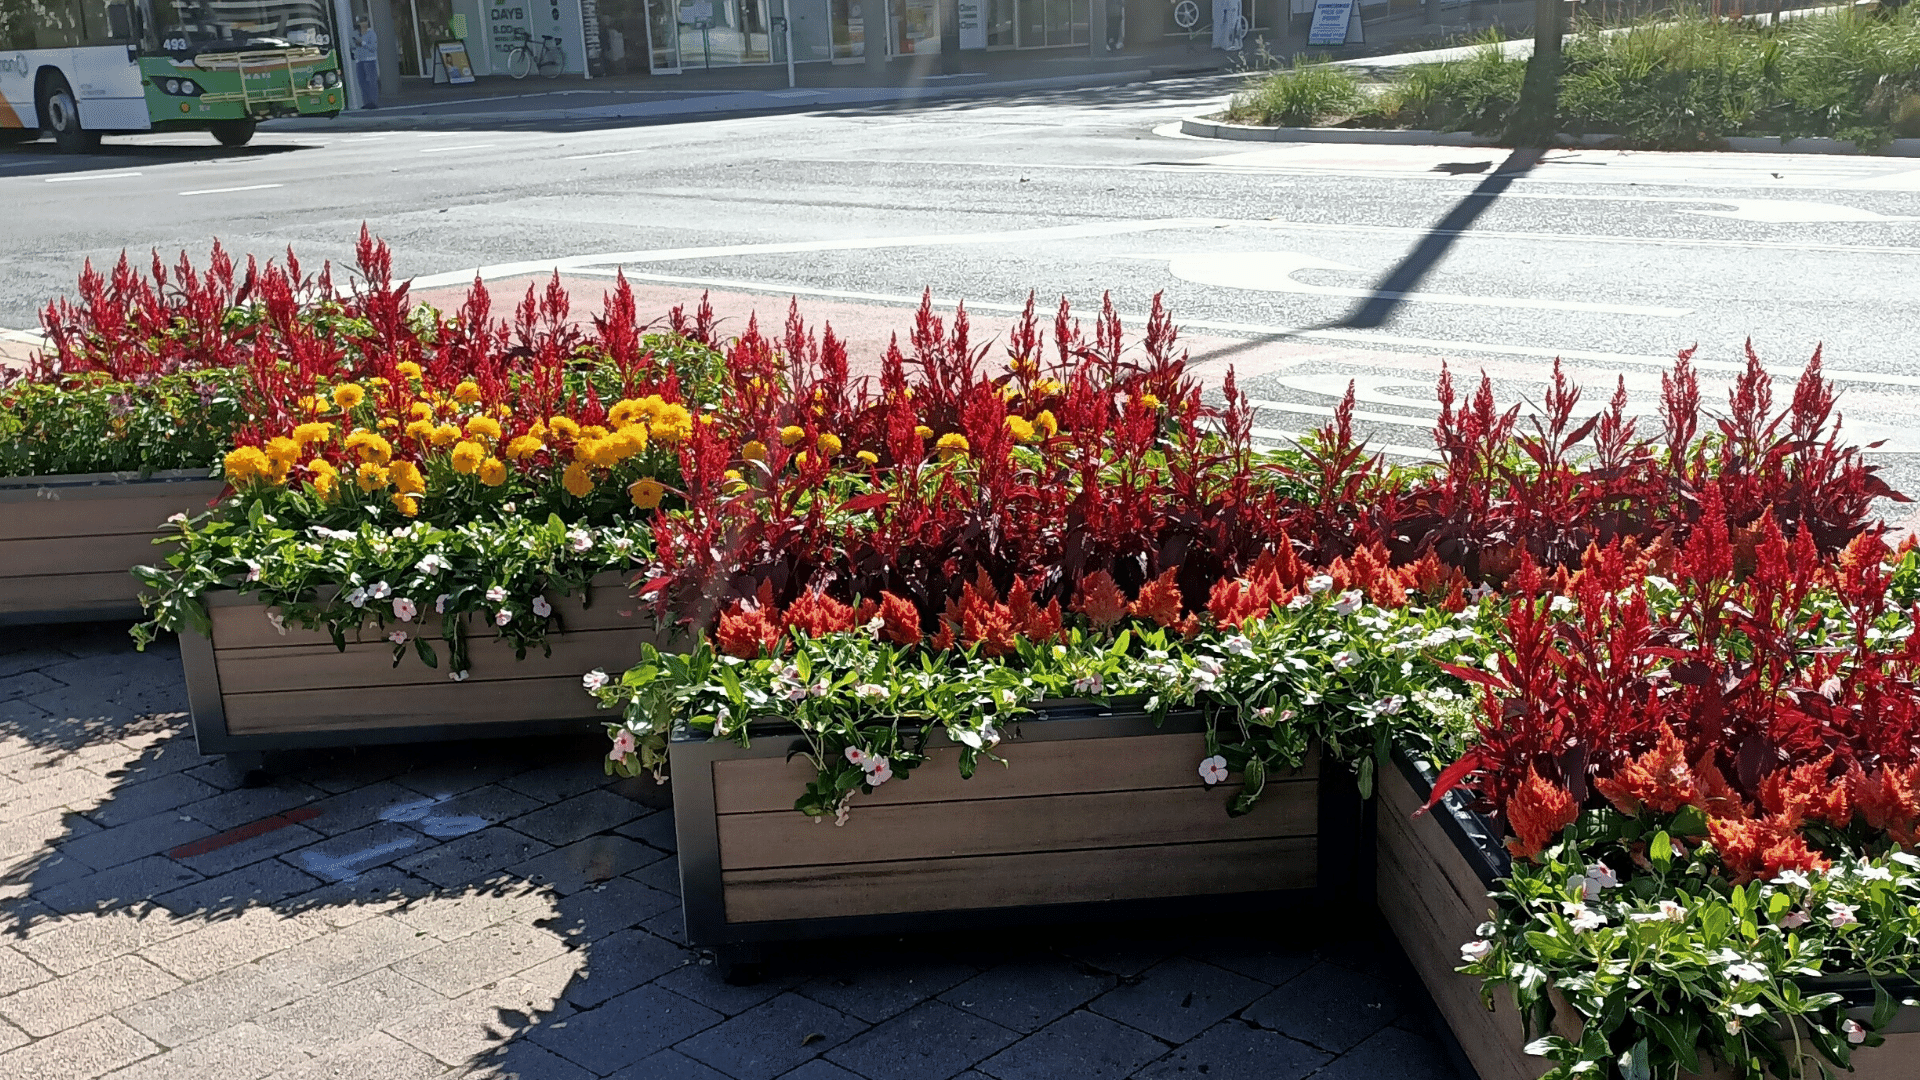 4 flower boxes of plants in the city